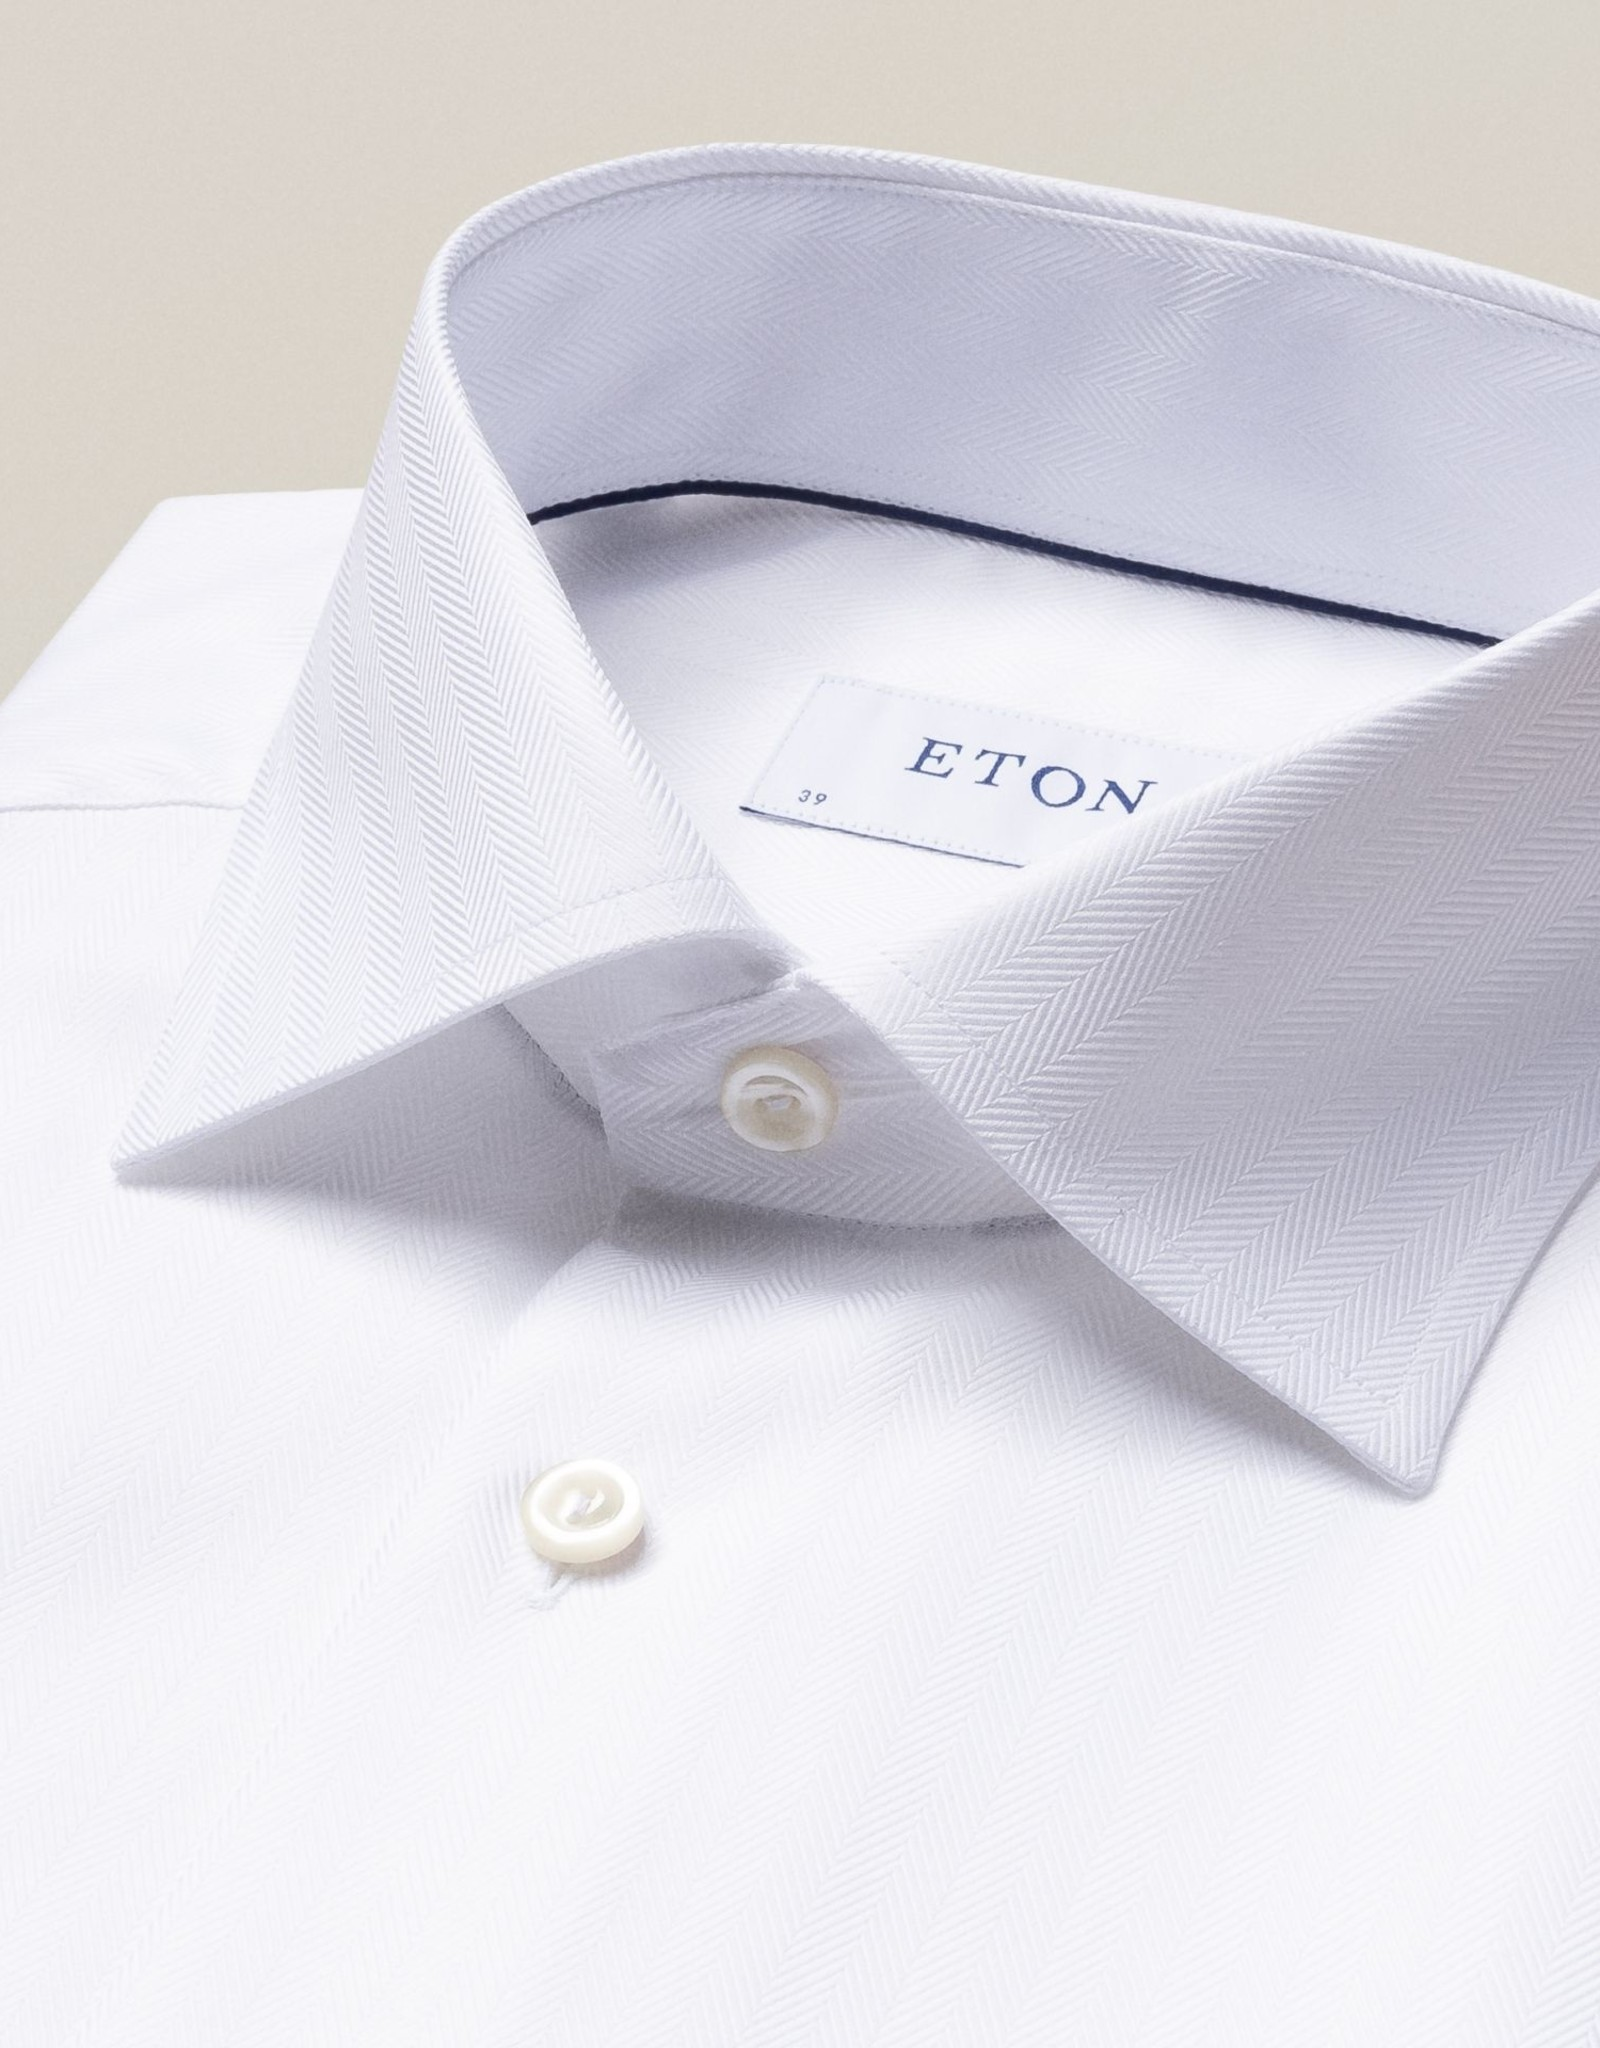 Eton Eton Slim Fit Dress Shirt Herringbone Pattern